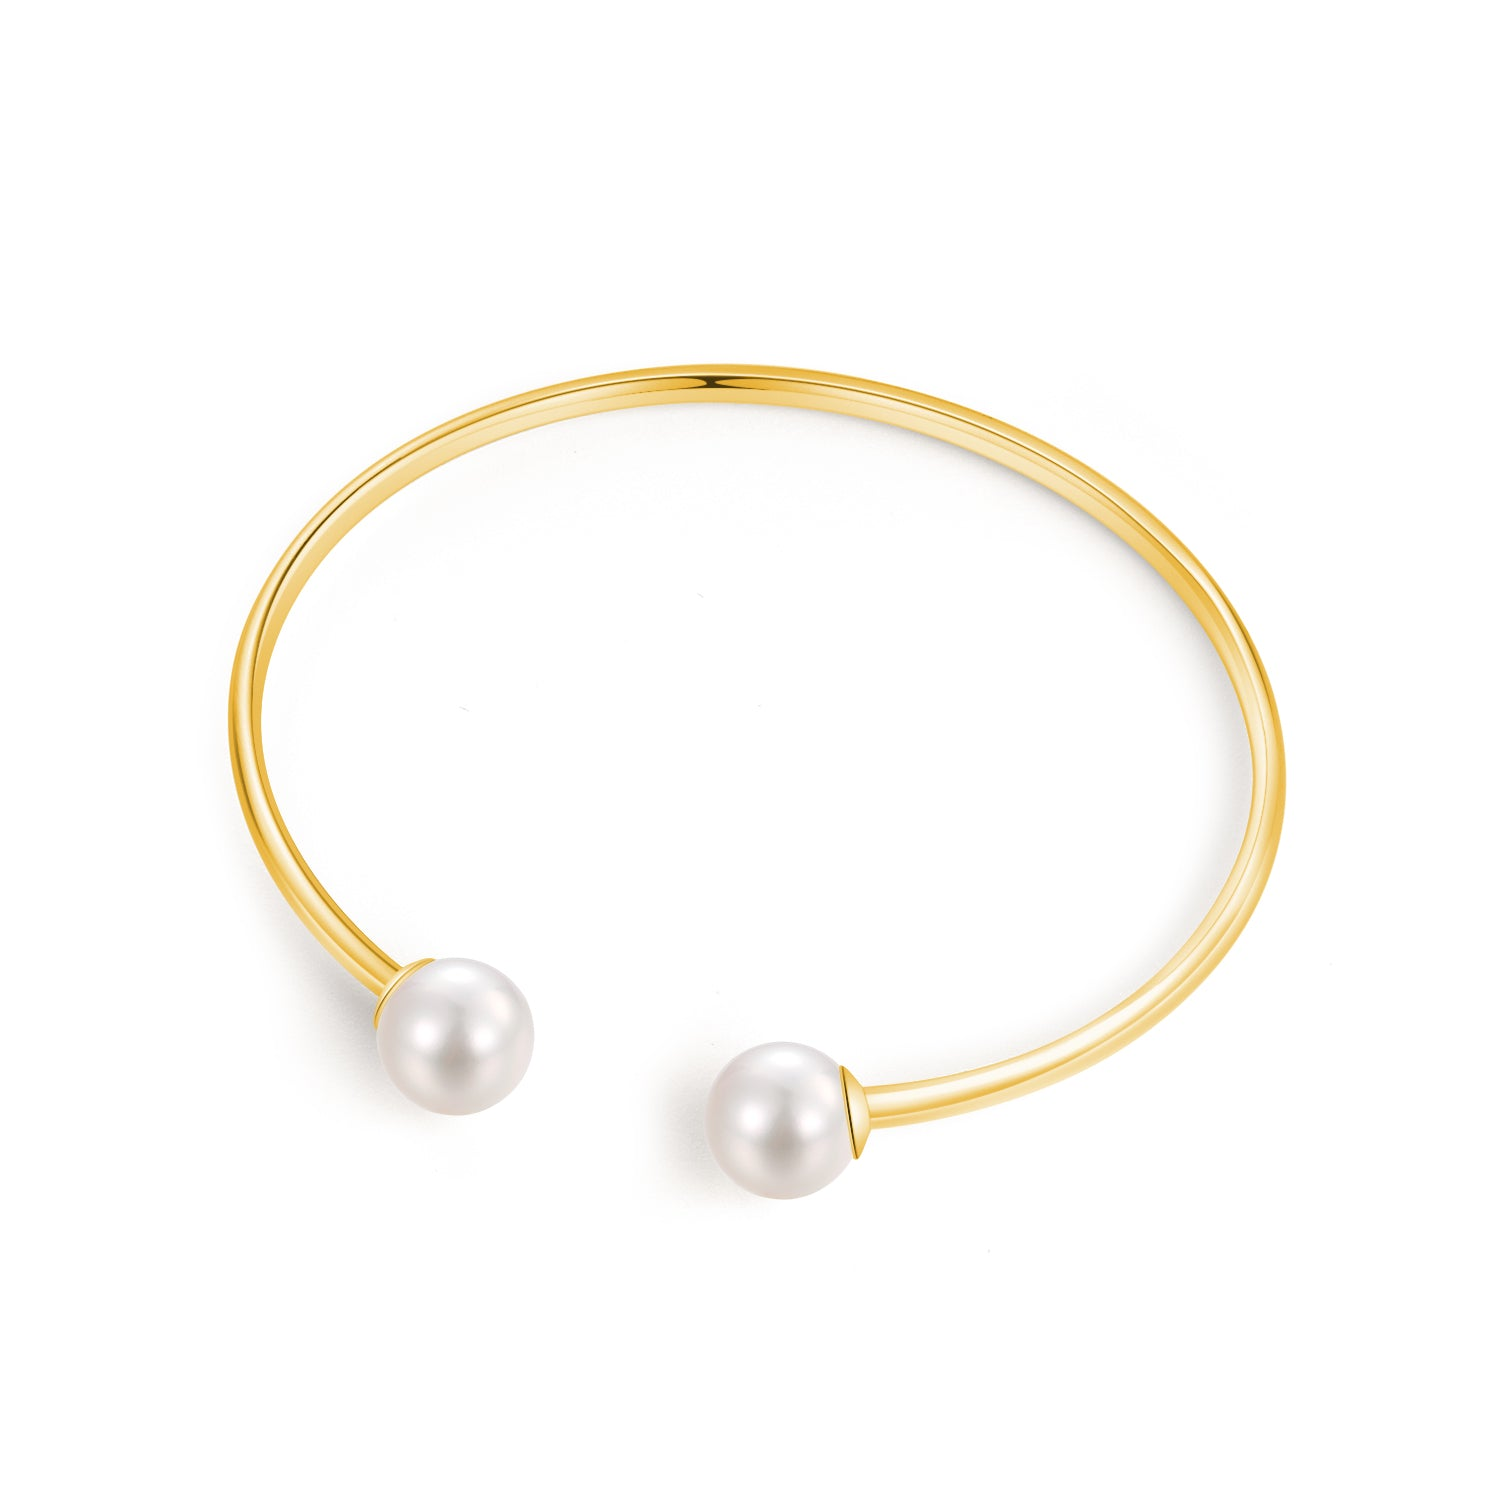 18K Yellow Gold Bangle With 8-8.5mm Akoya Pearl - Woment Designer Jewelry